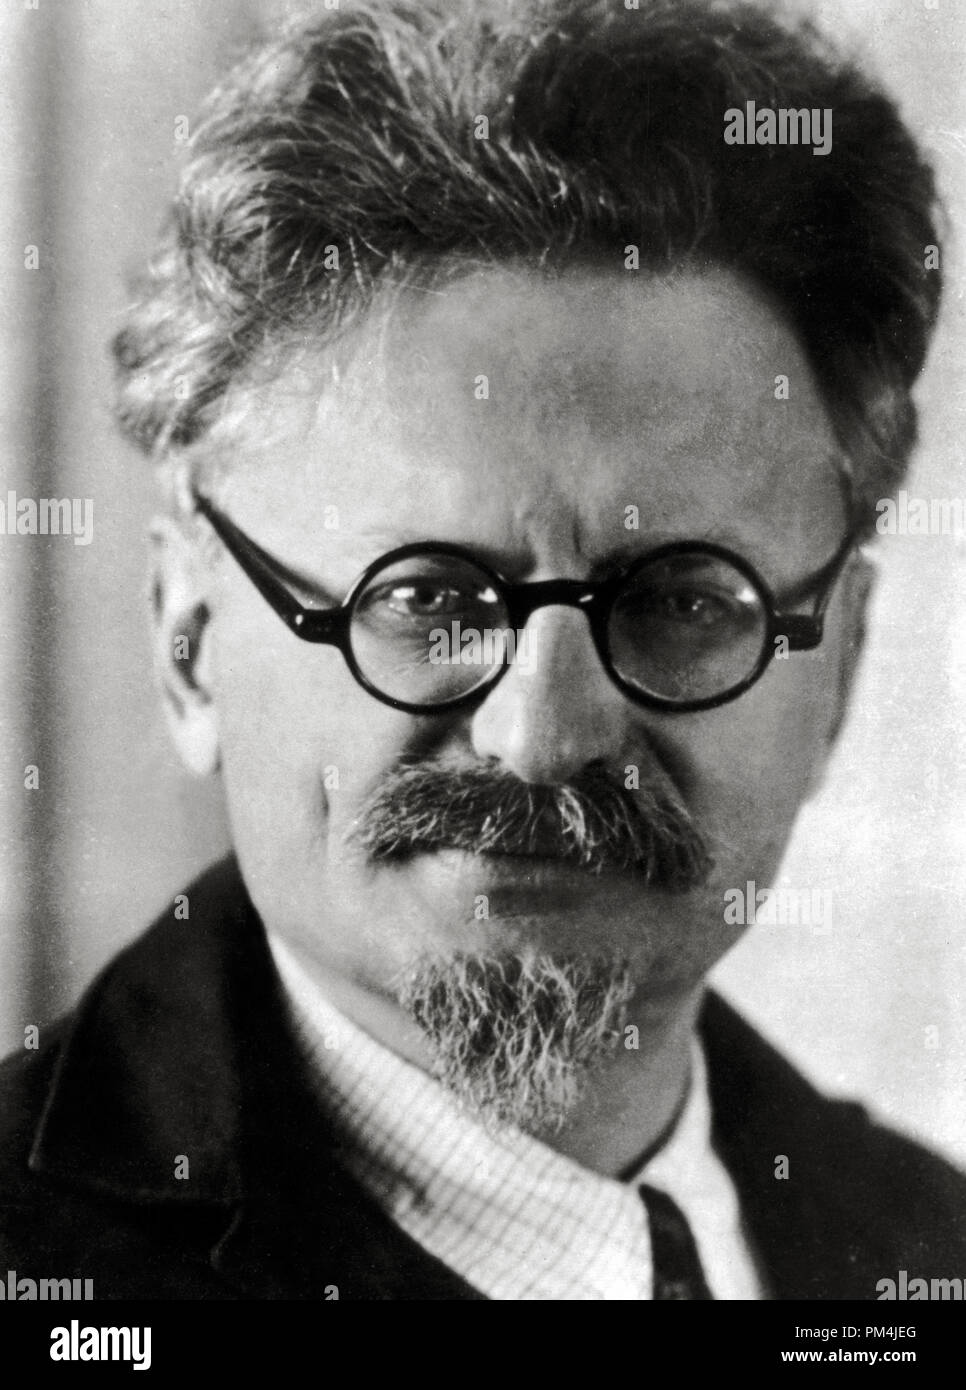 Portrait of Russian Revolutionary, political leader and author Leon Trotsky. Trotsky was one of the central leaders of the Russian Revolution, circa 1932   File Reference # 1003_690THA - Stock Image